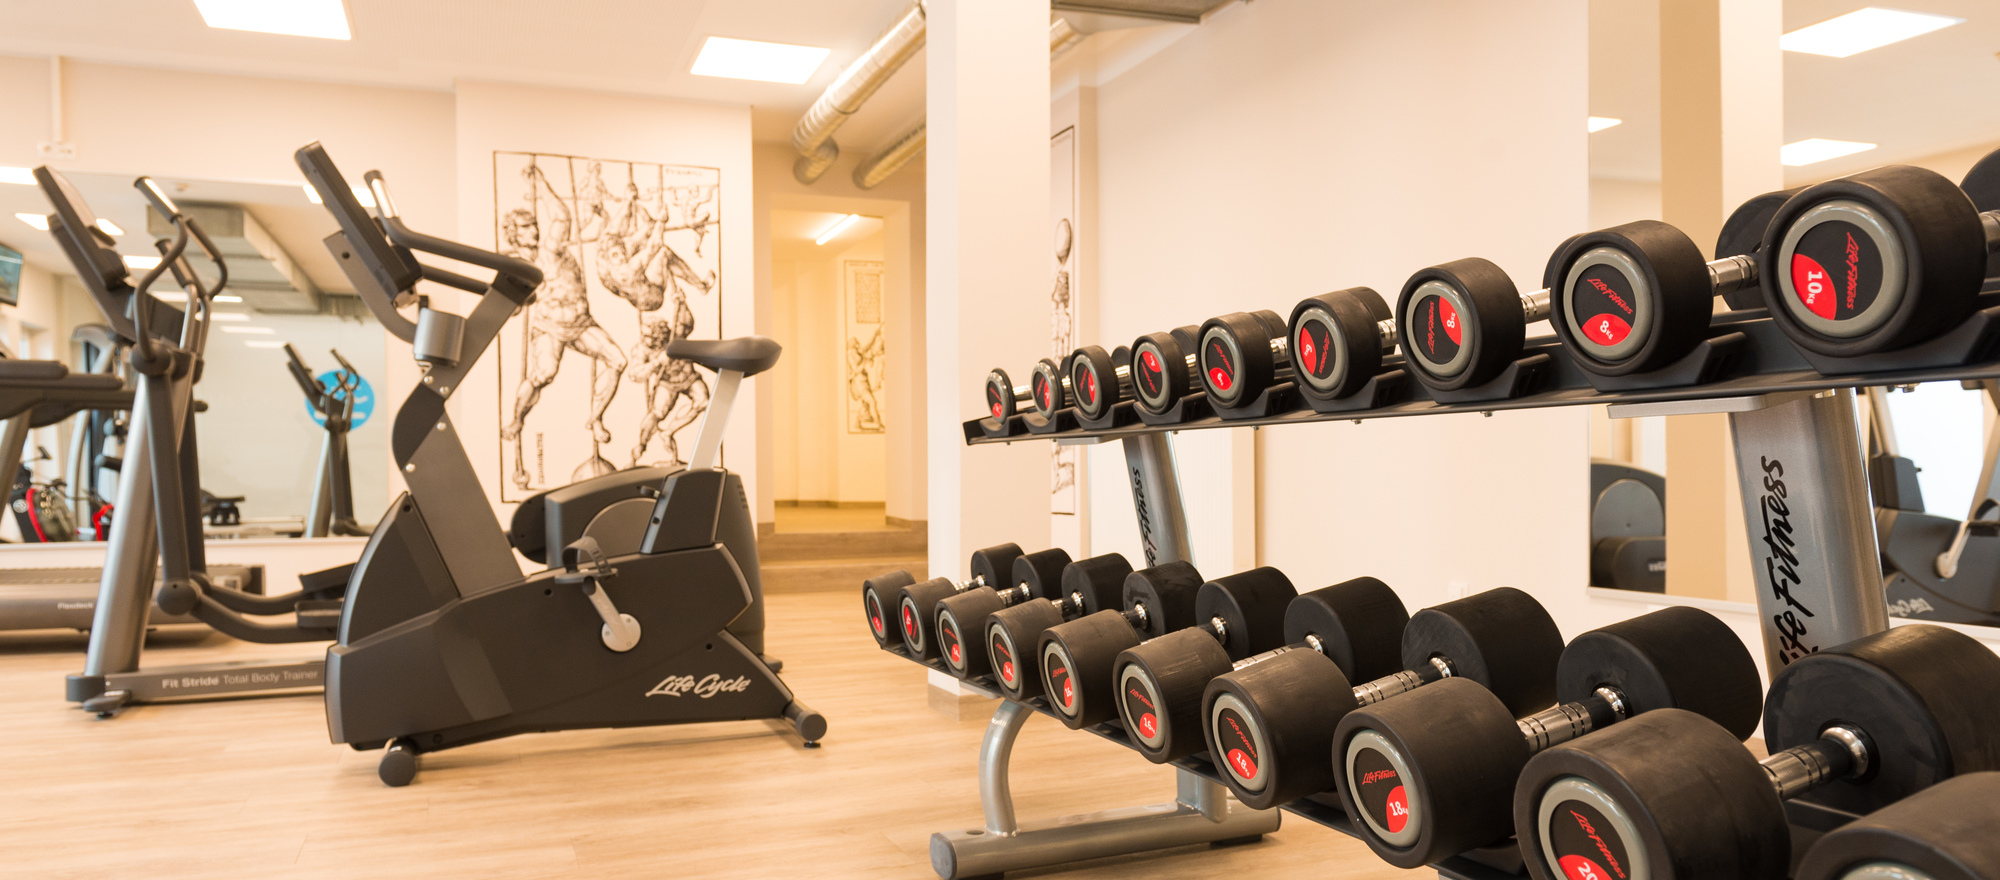 Fitness room in the  Ringhotel Loew's Merkur, 4 stars Hotel in Franconia